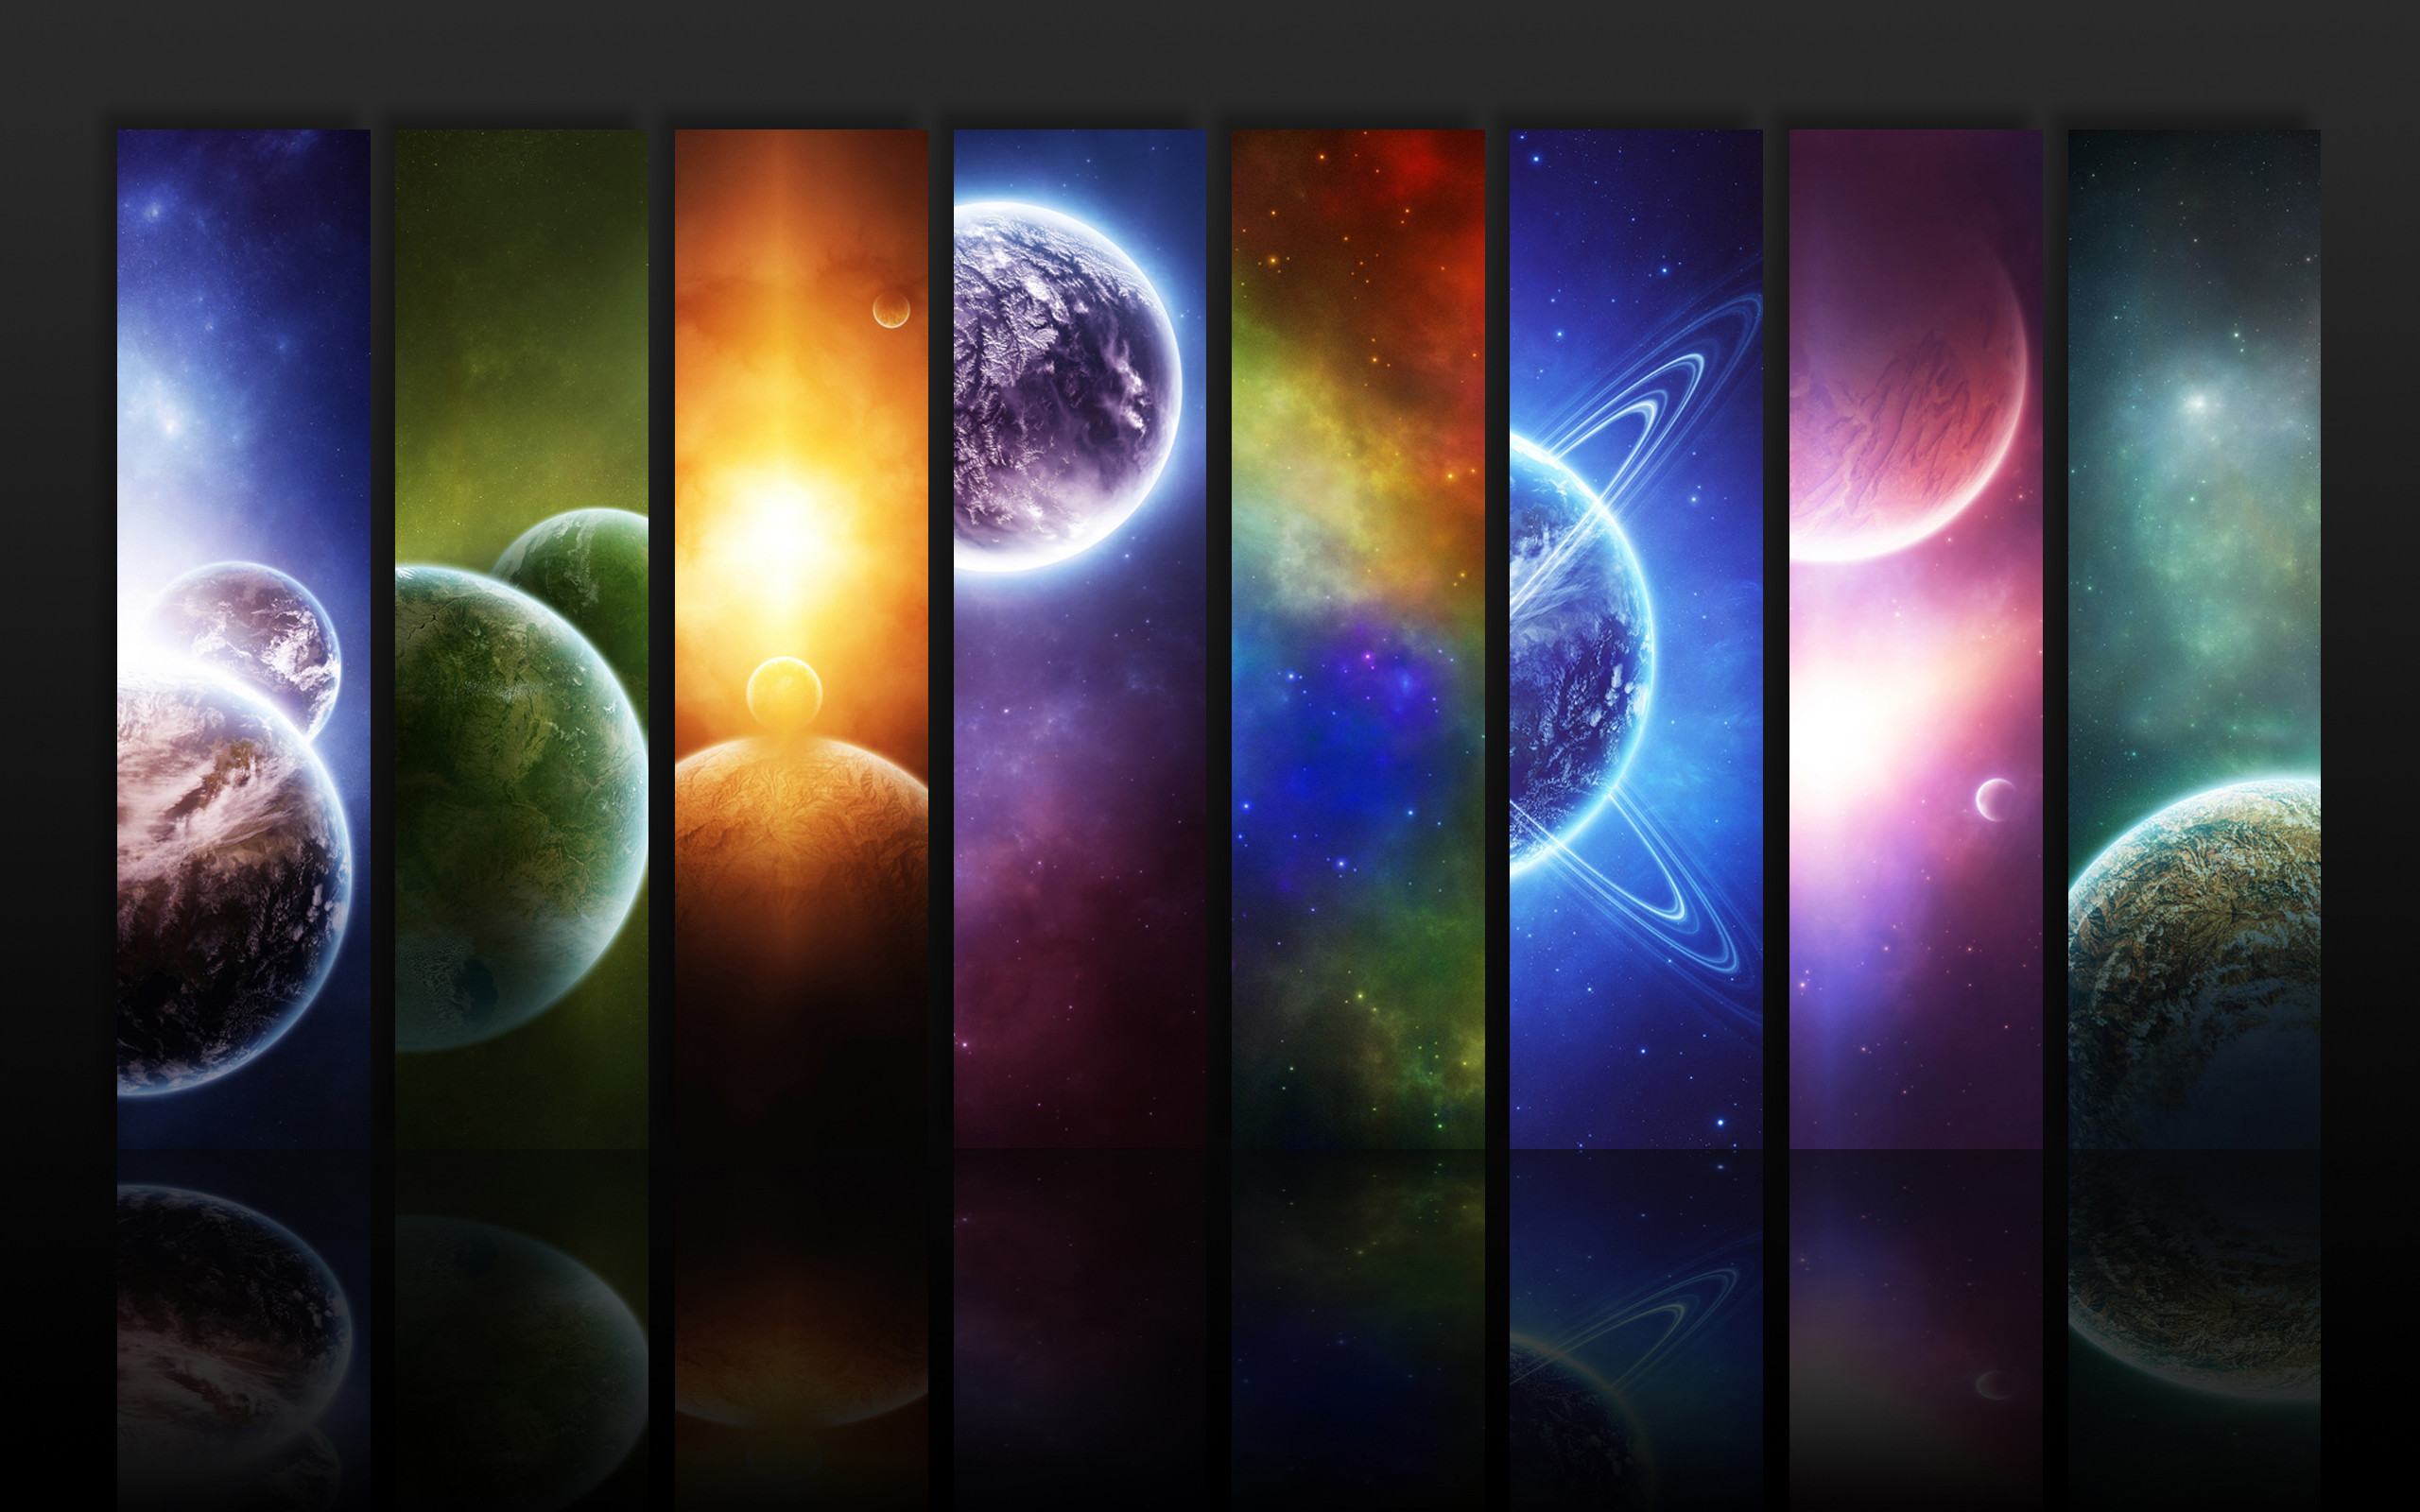 Colorful Space Wallpapers Hd Resolution As Wallpaper HD